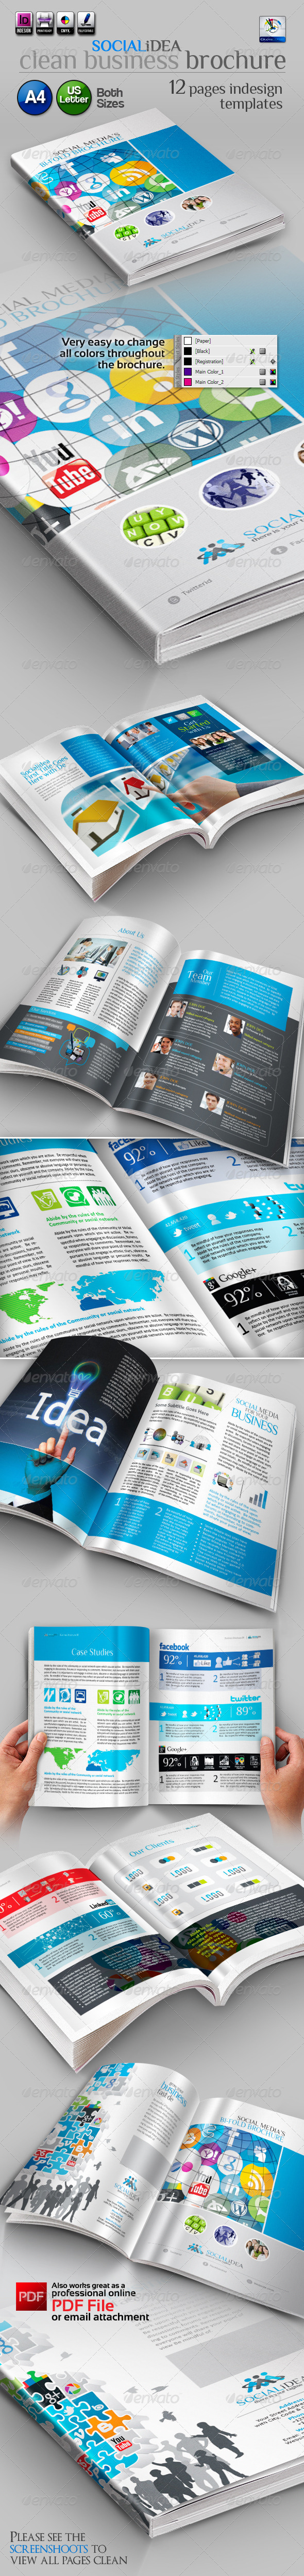 Socialidea: Social Media Clean Bi-fold Brochure - Corporate Brochures